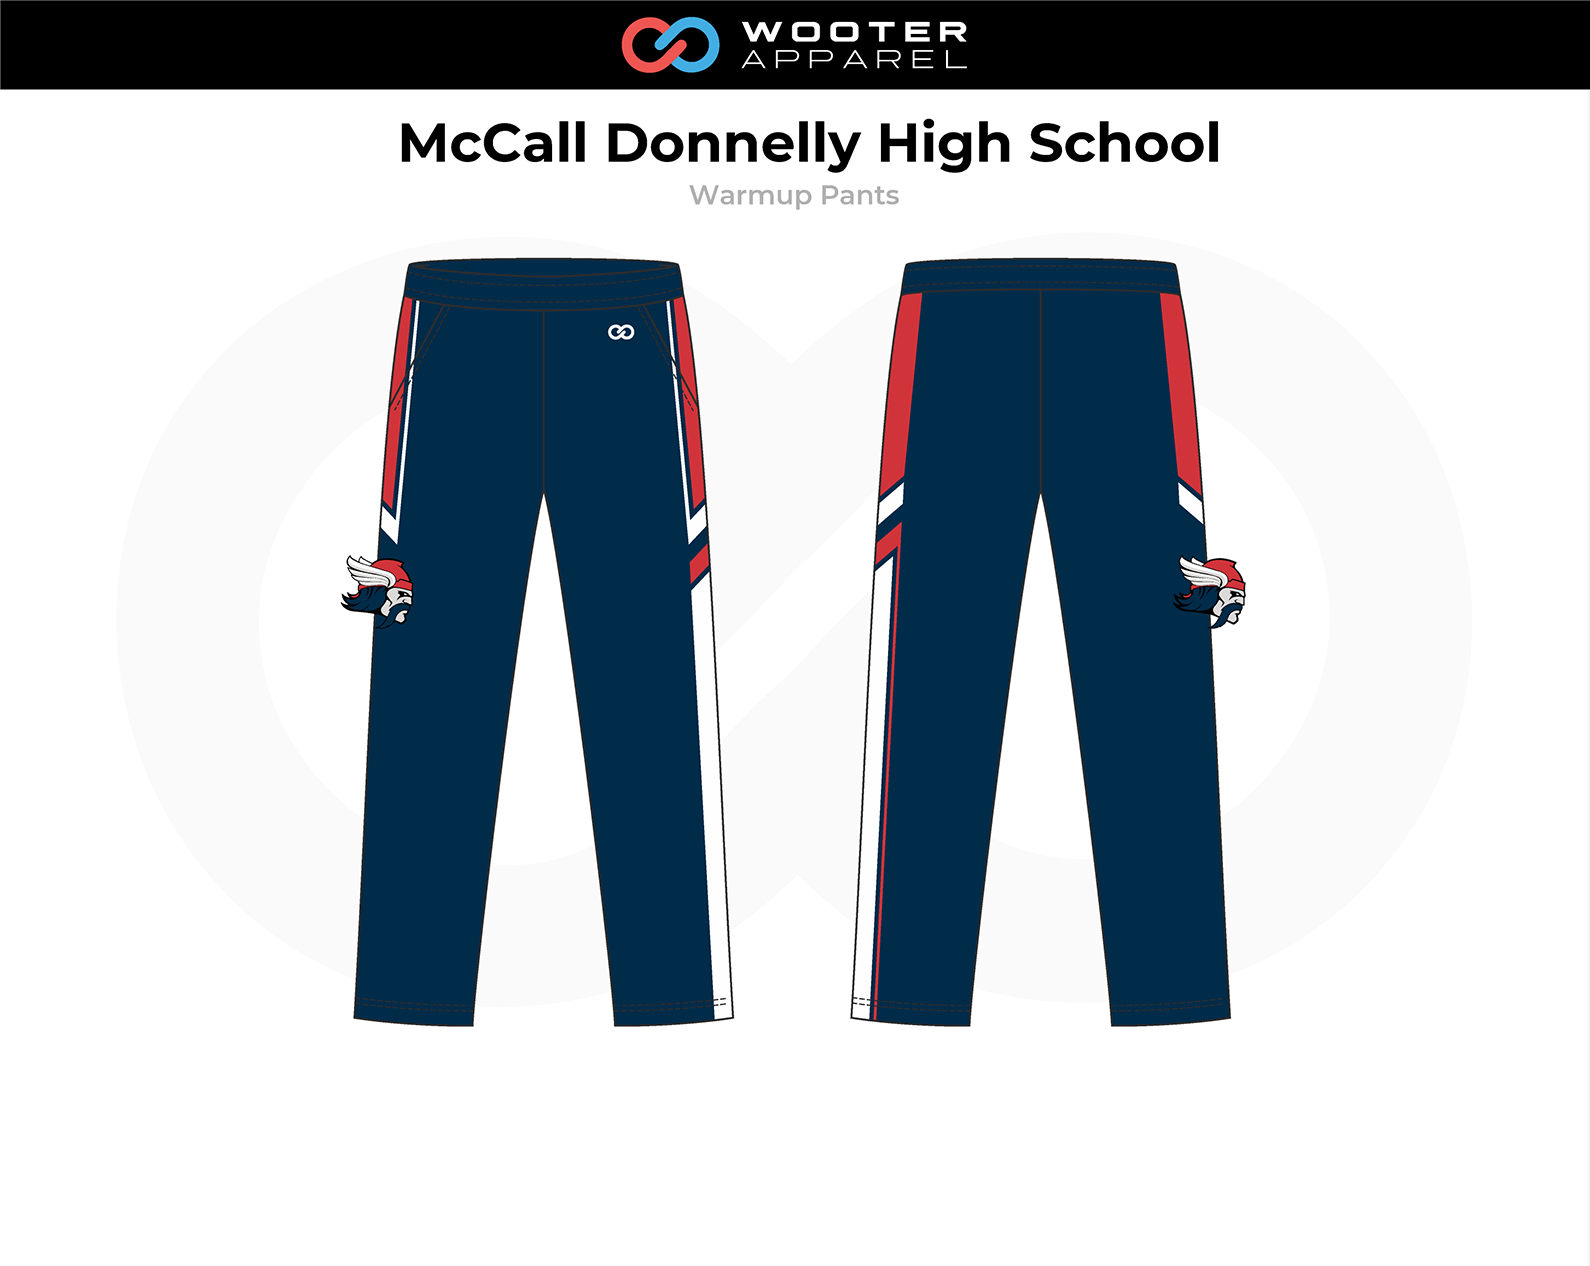 2018-10-25 McCall Donnelly High School Basketball (Panthers) Warmup Pants.png